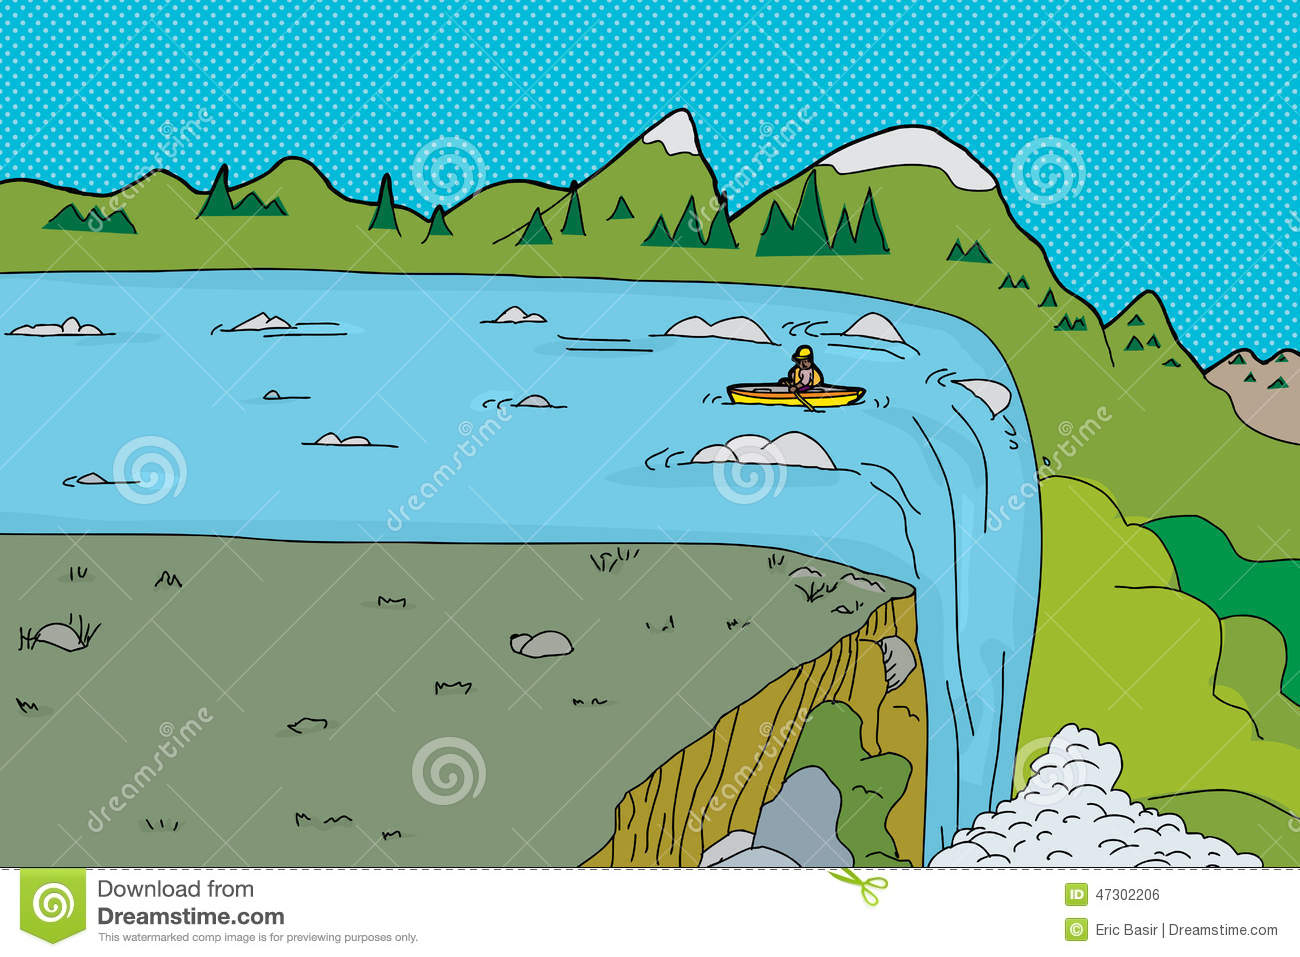 Stock Illustration Man Kayak Waterfall Single Canoe Near Edge Image47302206 on cartoon person falling down